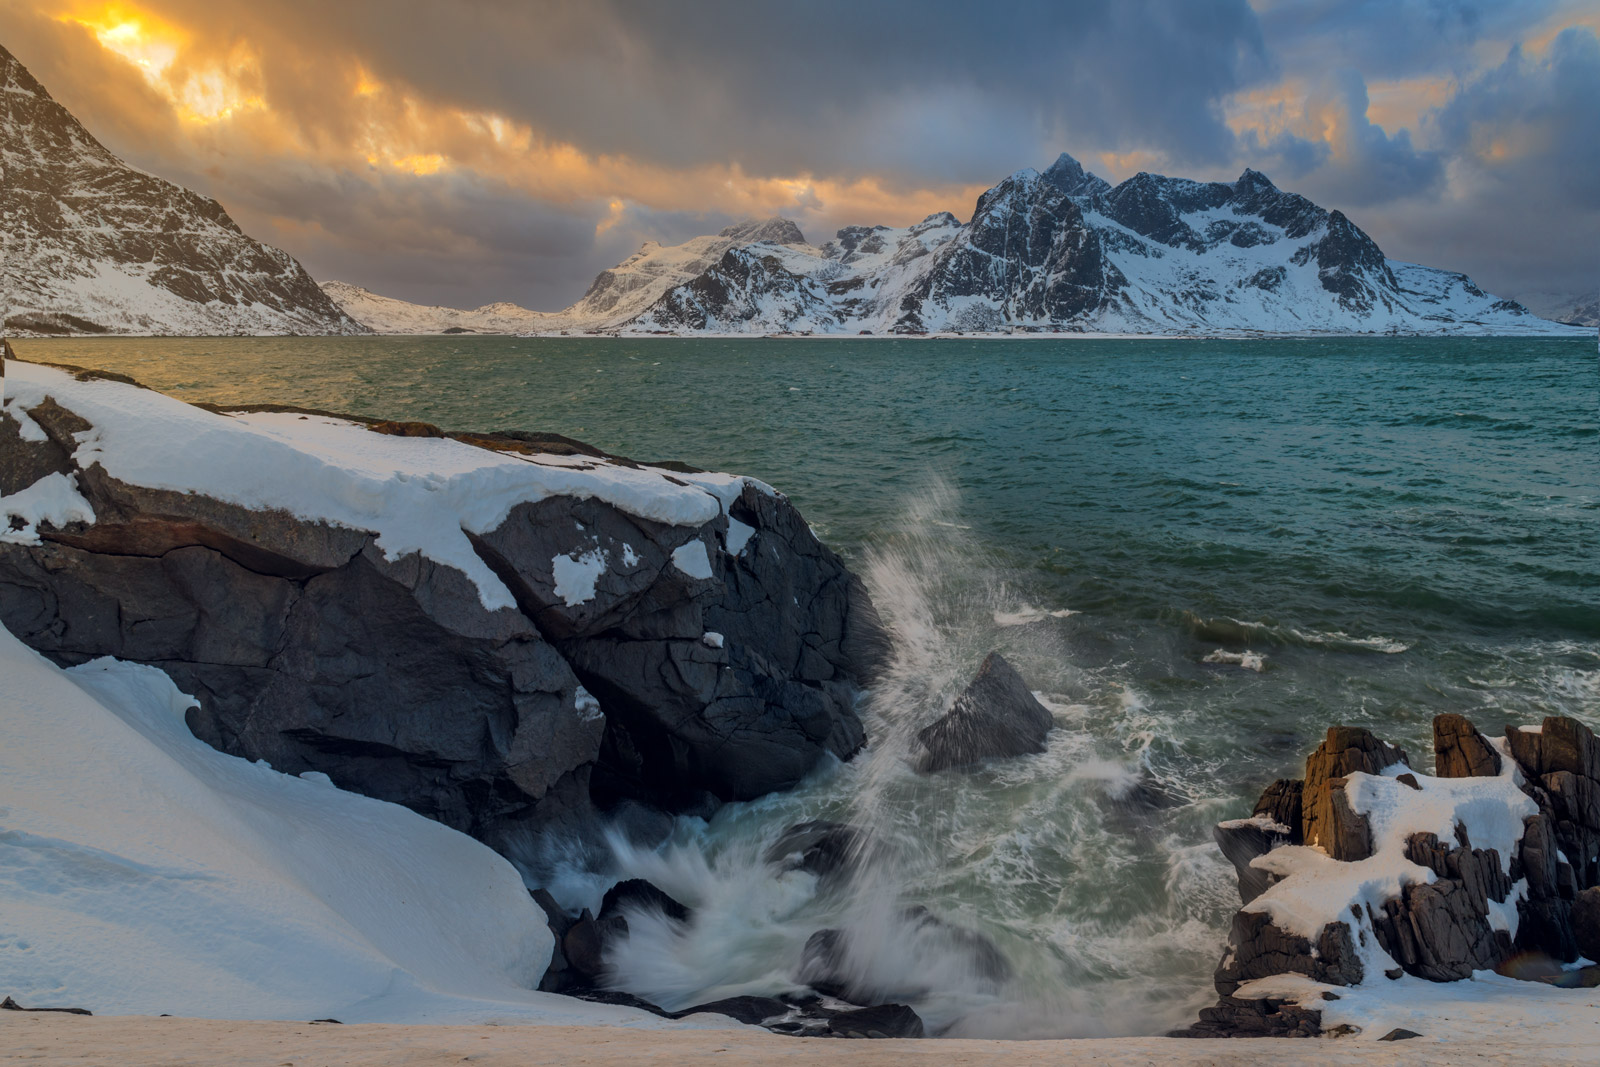 Norway, Lofoten, Wind, Waves, Mountains, Sky, limited edition, photograph, fine art, landscape, photo